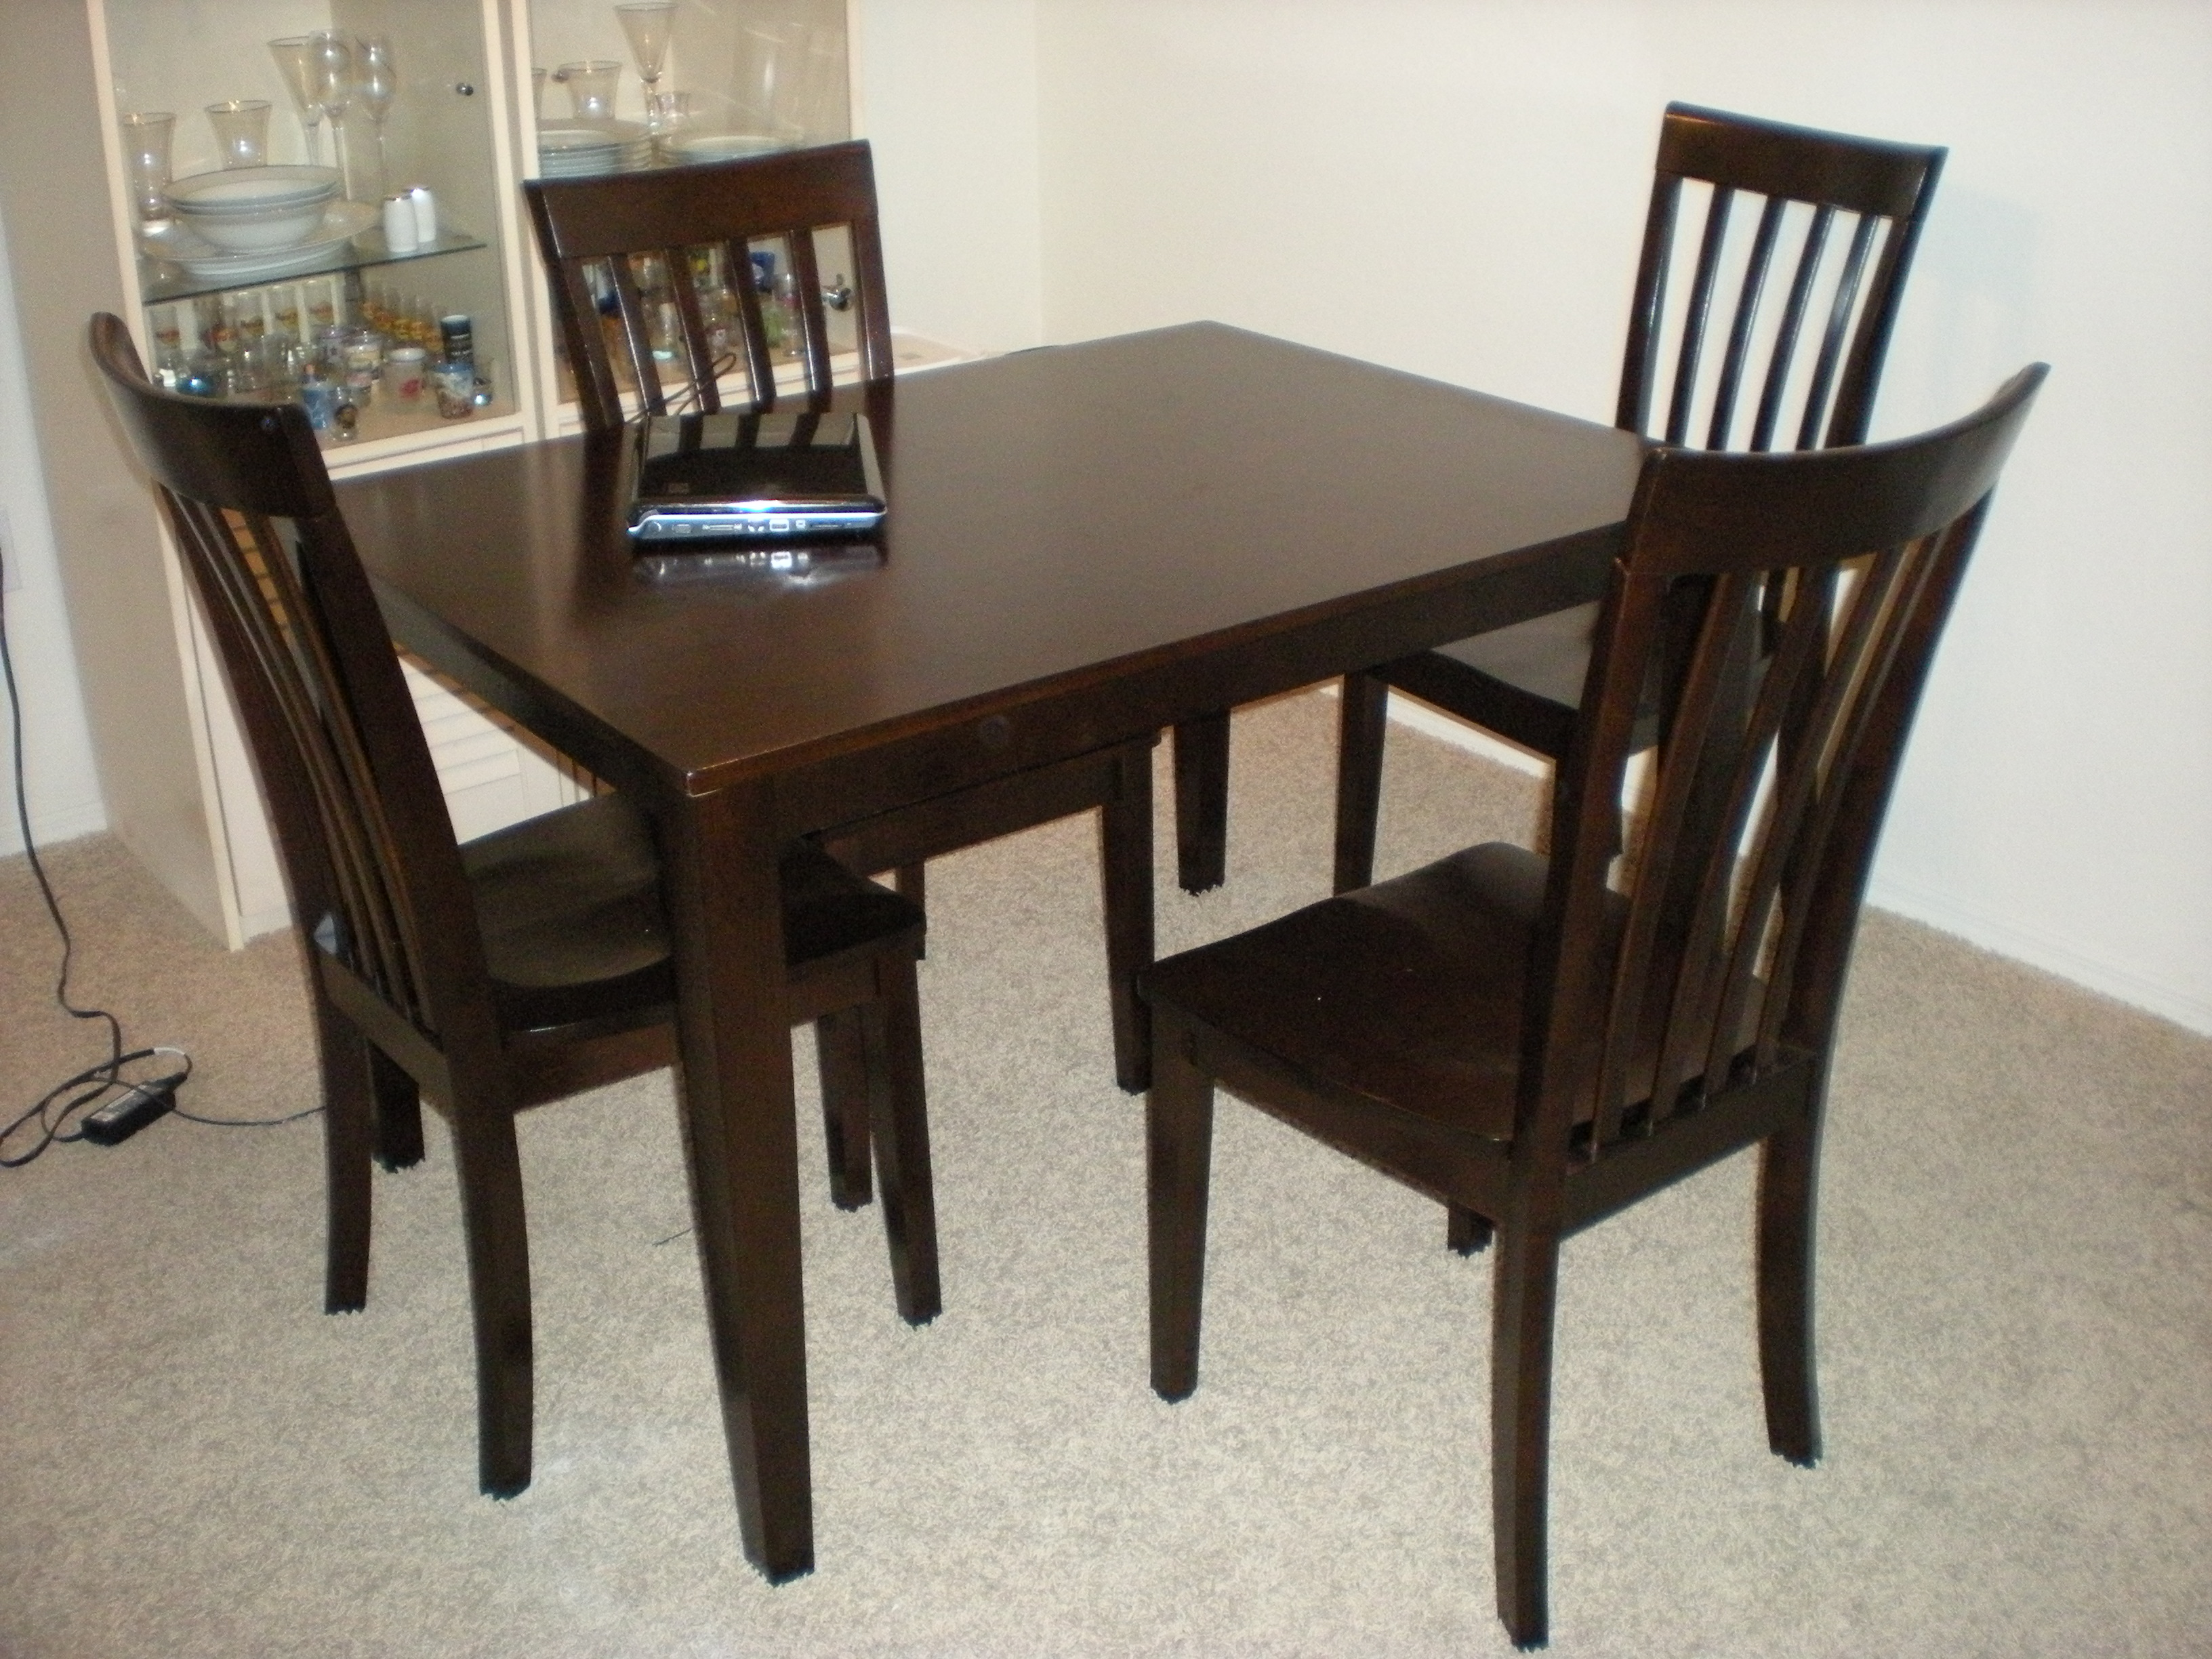 Cheap dark wood furniture at the galleria for Dark wood furniture